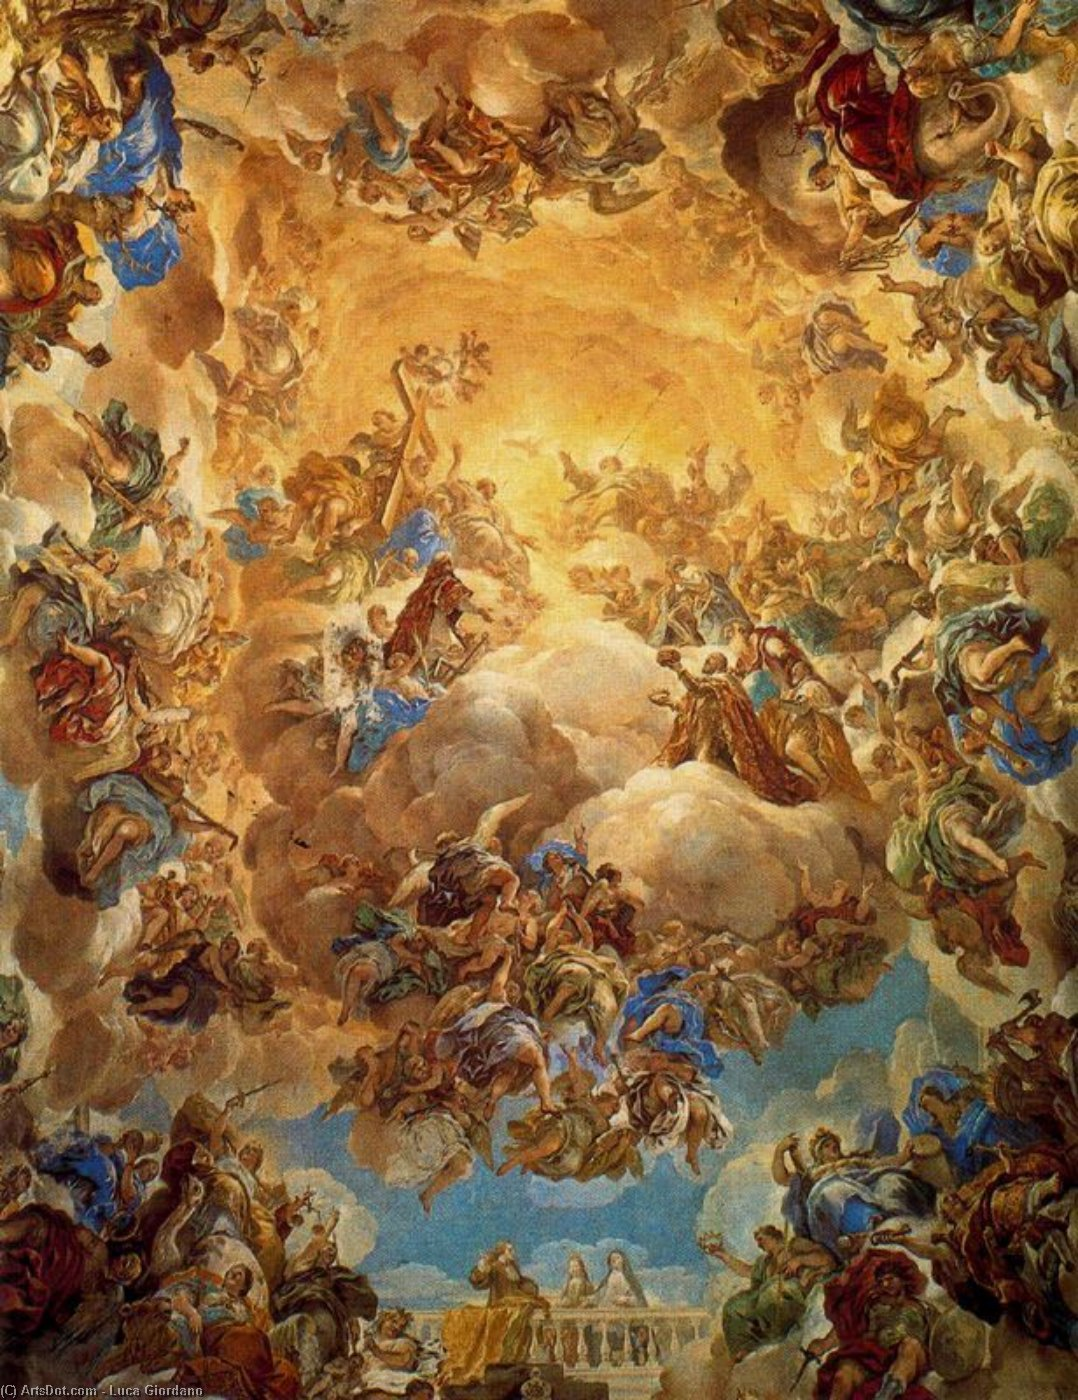 Dome of the staircase by Luca Giordano (1634-1705, Italy)